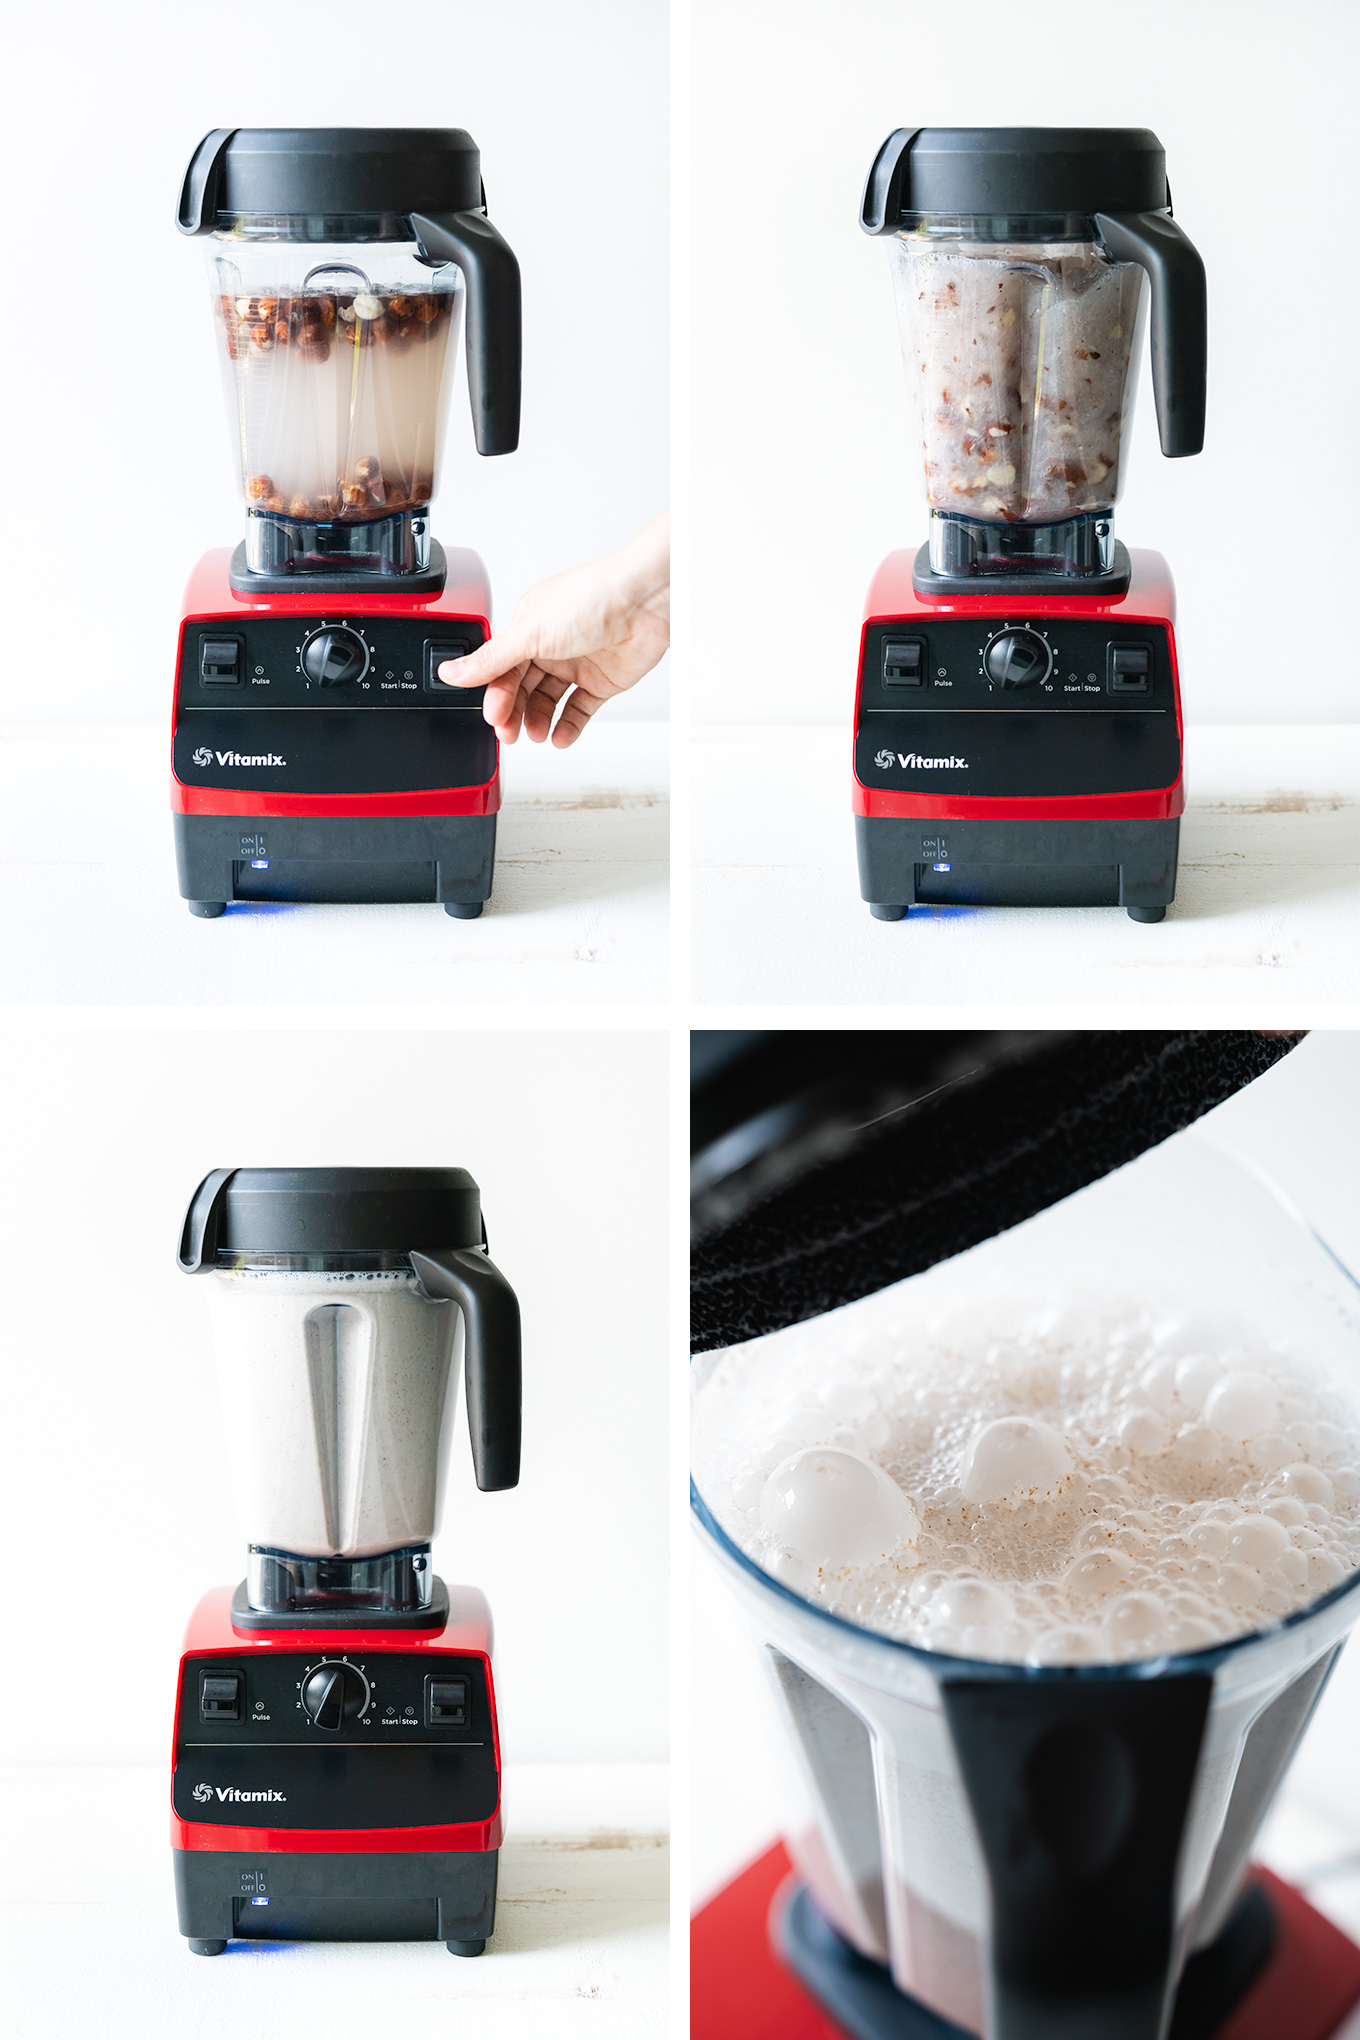 Four stages of blending nut milk, three blender images and one open blender image